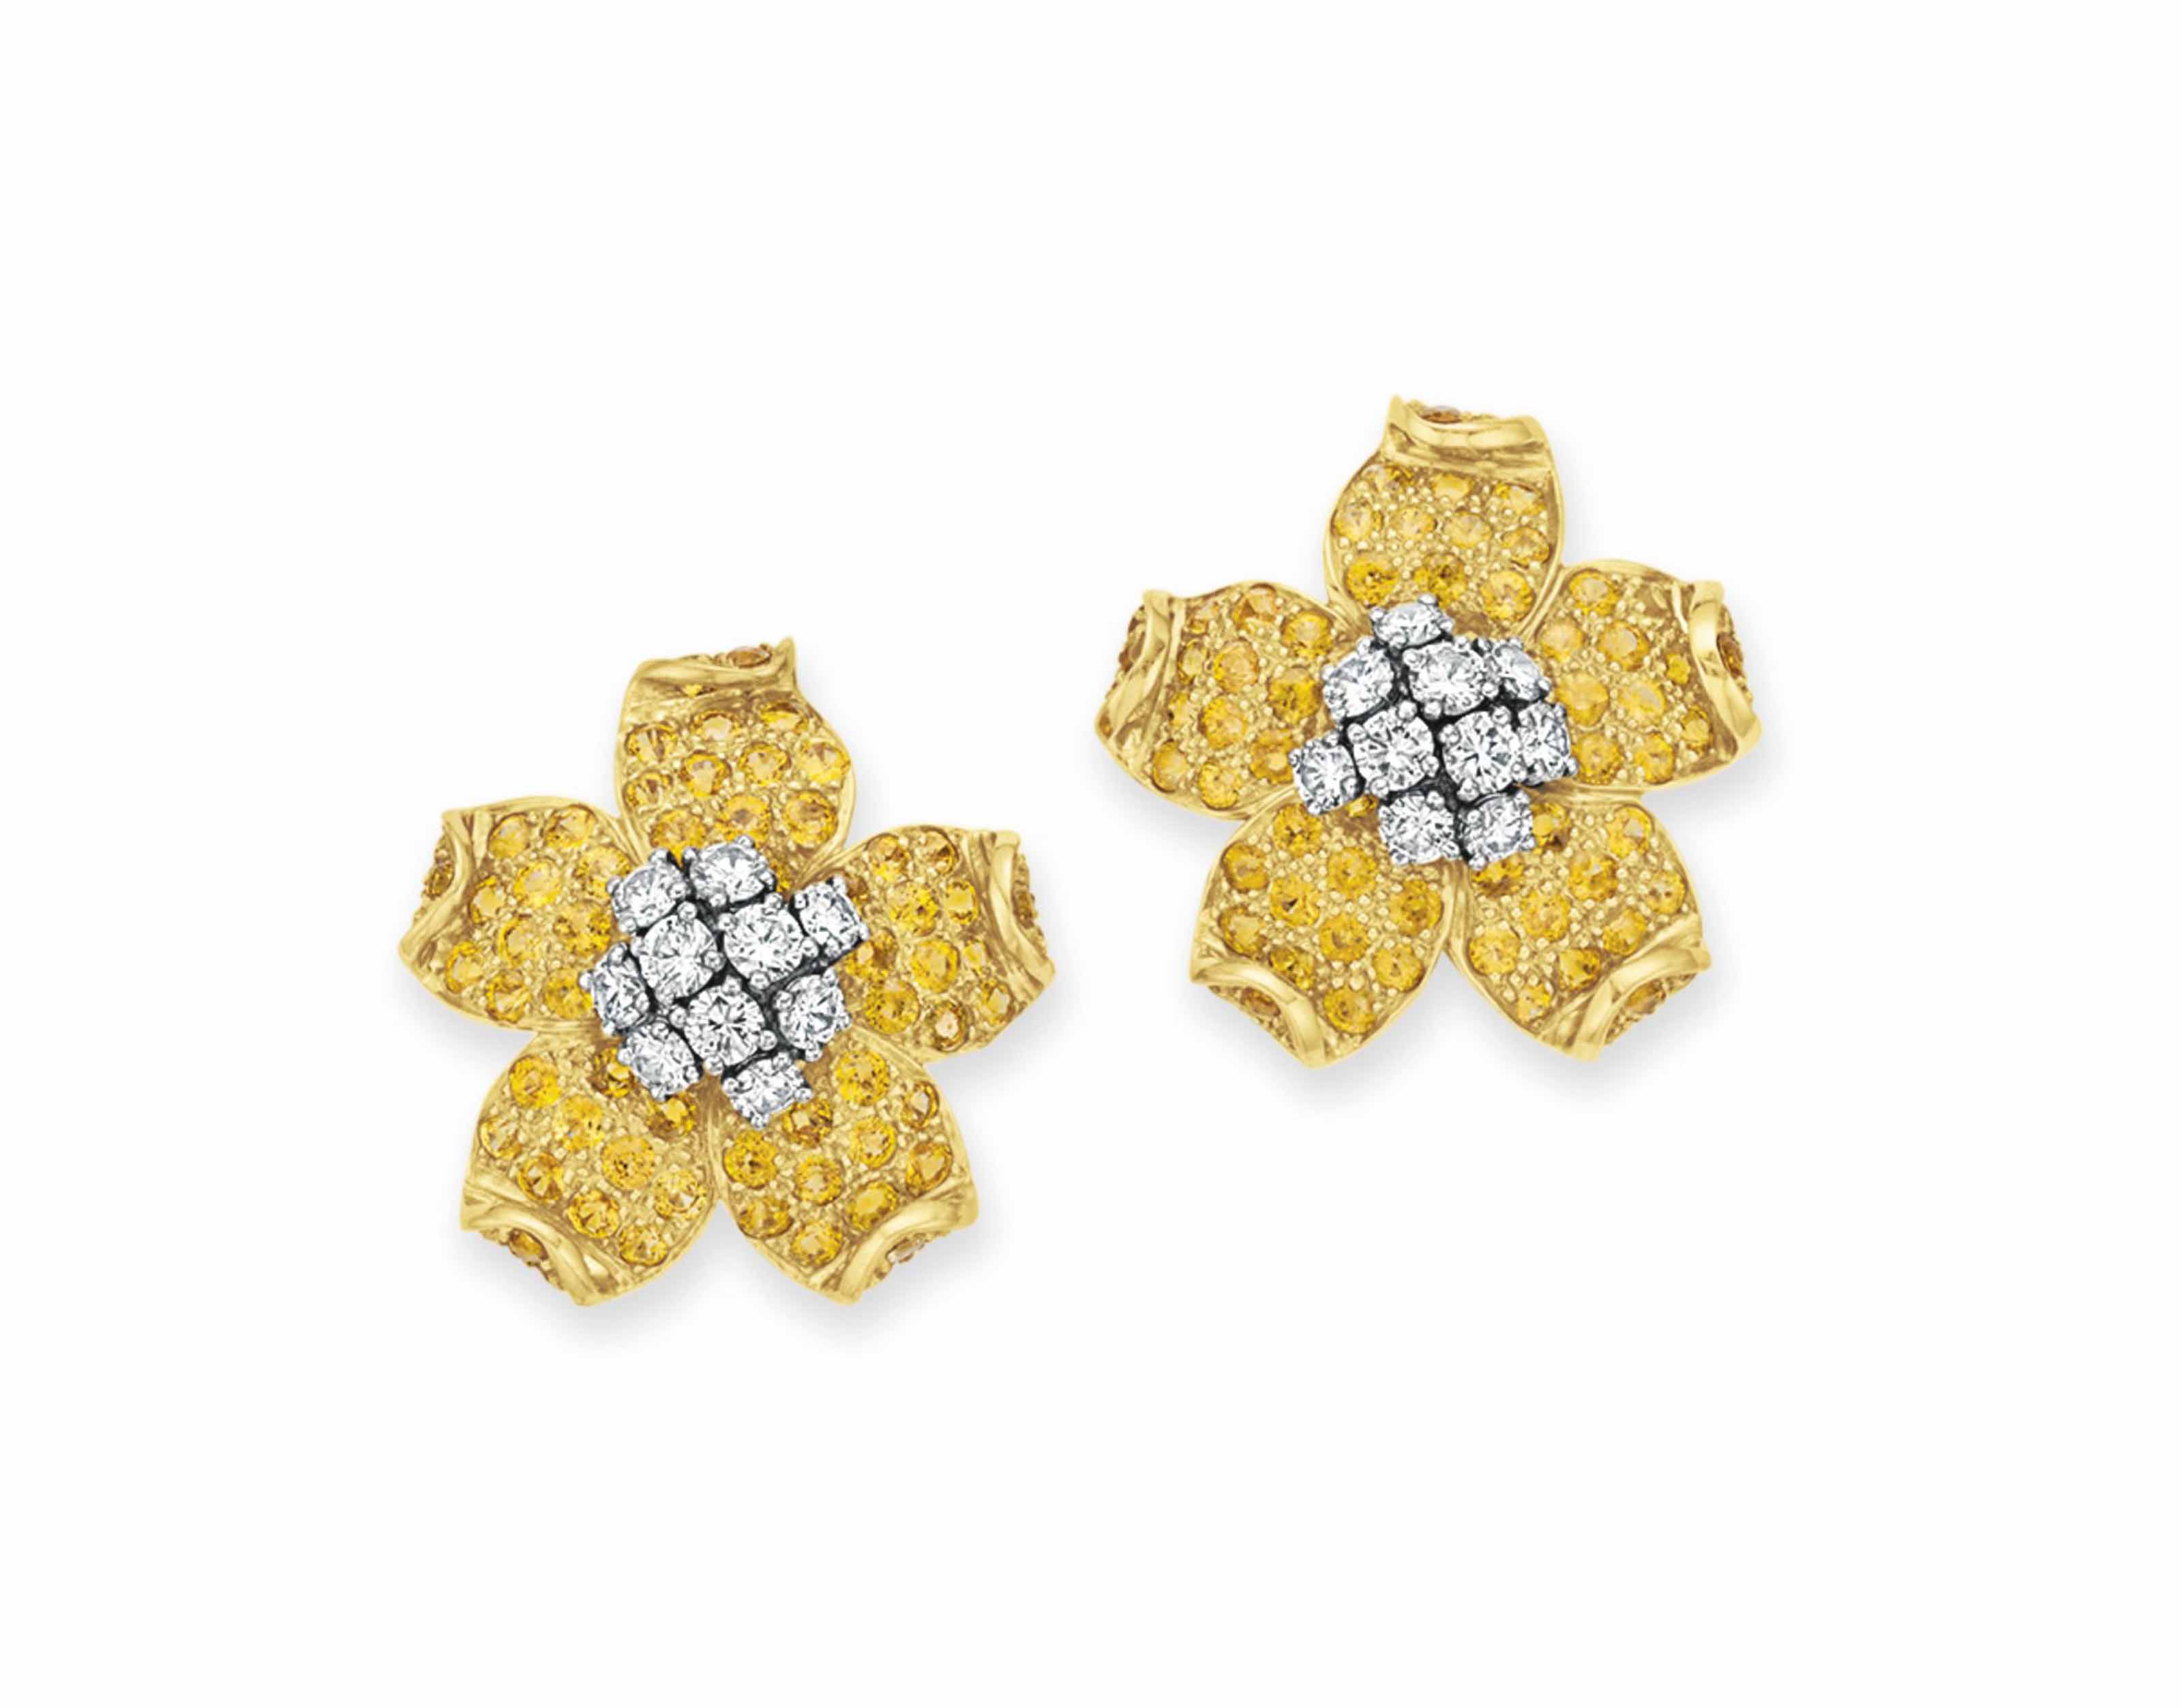 A PAIR OF DIAMOND AND YELLOW SAPPHIRE FLOWER EAR CLIPS, BY WANDER